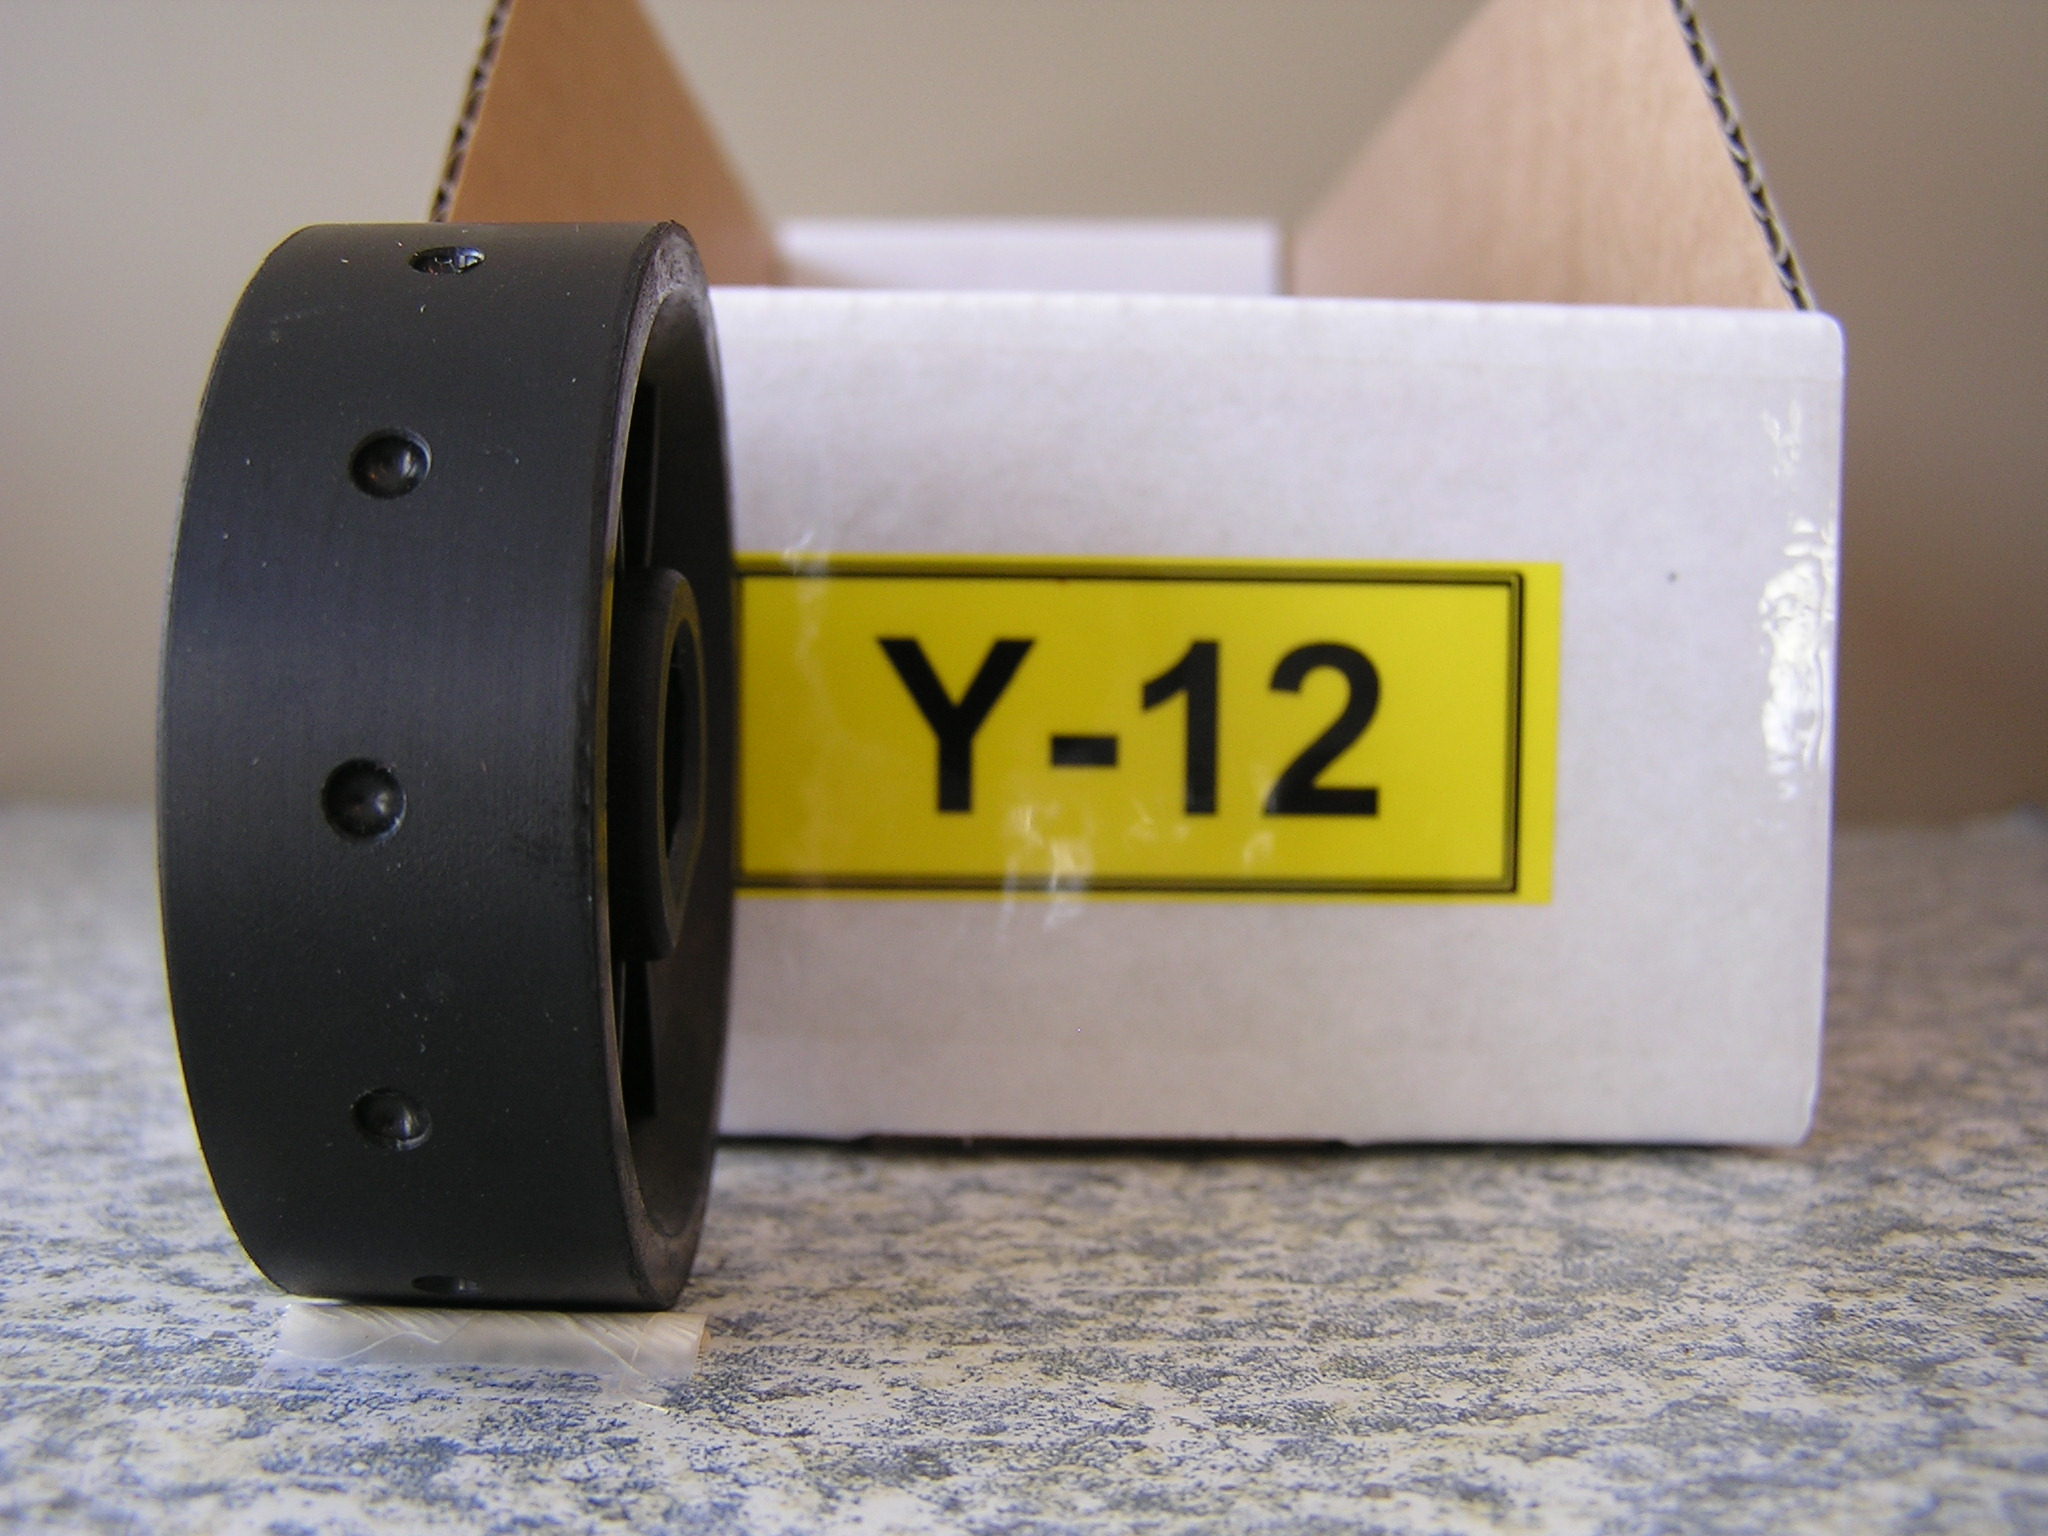 Y-12 Roller for Jang Seeder, 3.5 mm Slot, with 12 Slots on the Roller